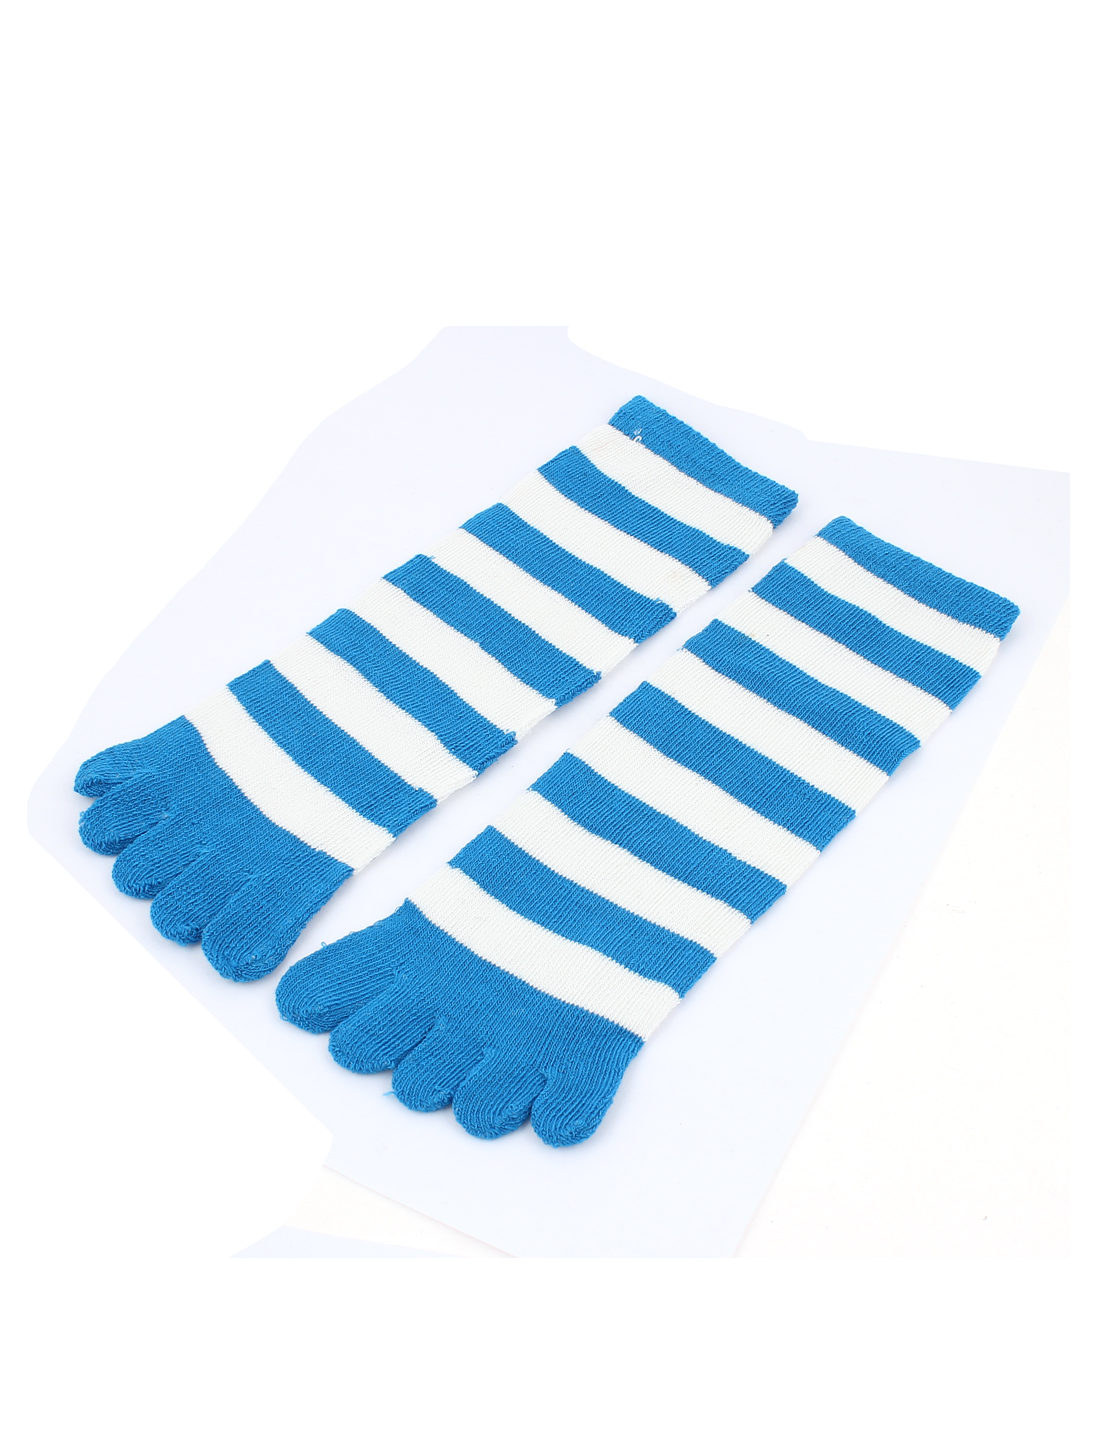 Women Stripes Pattern Elastic Ankle Length Five Fingers Full Toe Socks Blue Pair